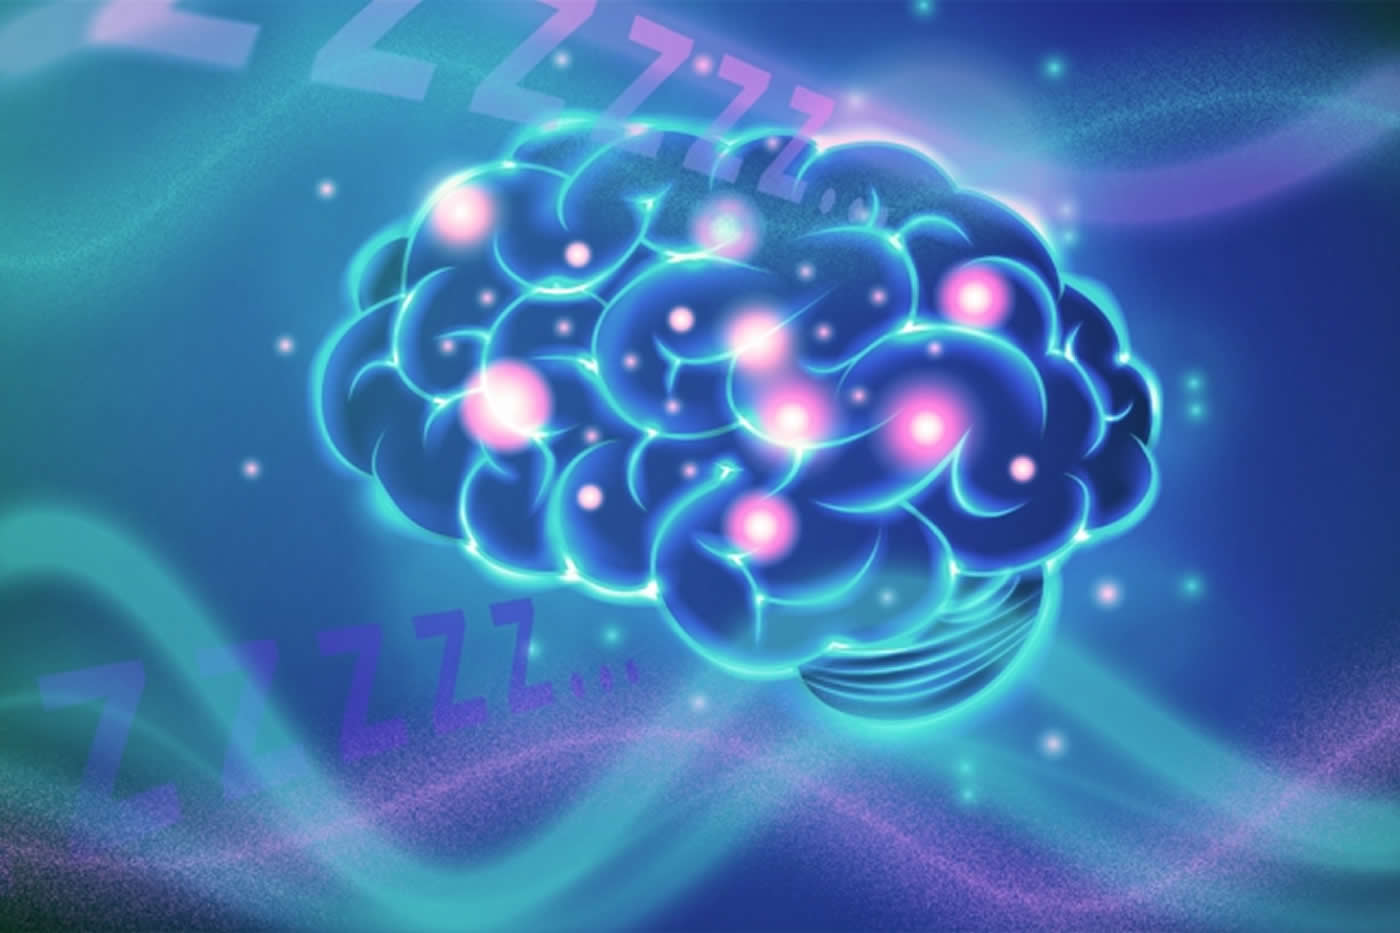 Illustration of a brain with balls inside all networked together.